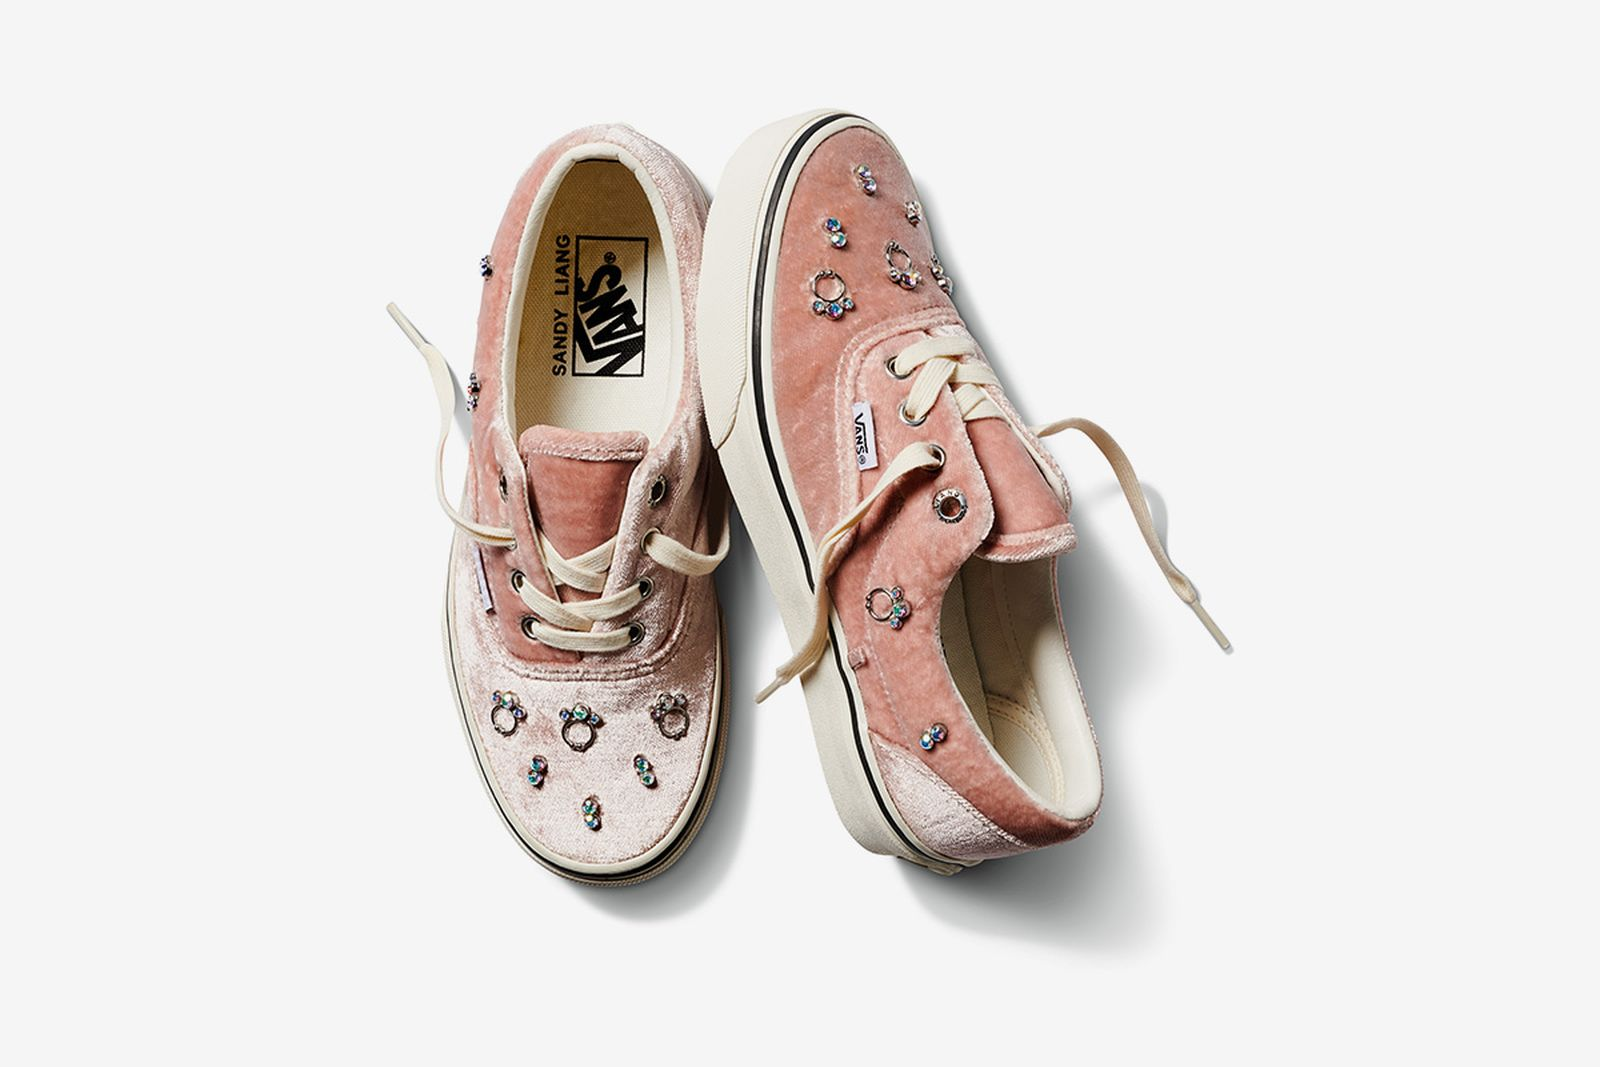 sandy-liang-vans-collection-release-date-price-1-19